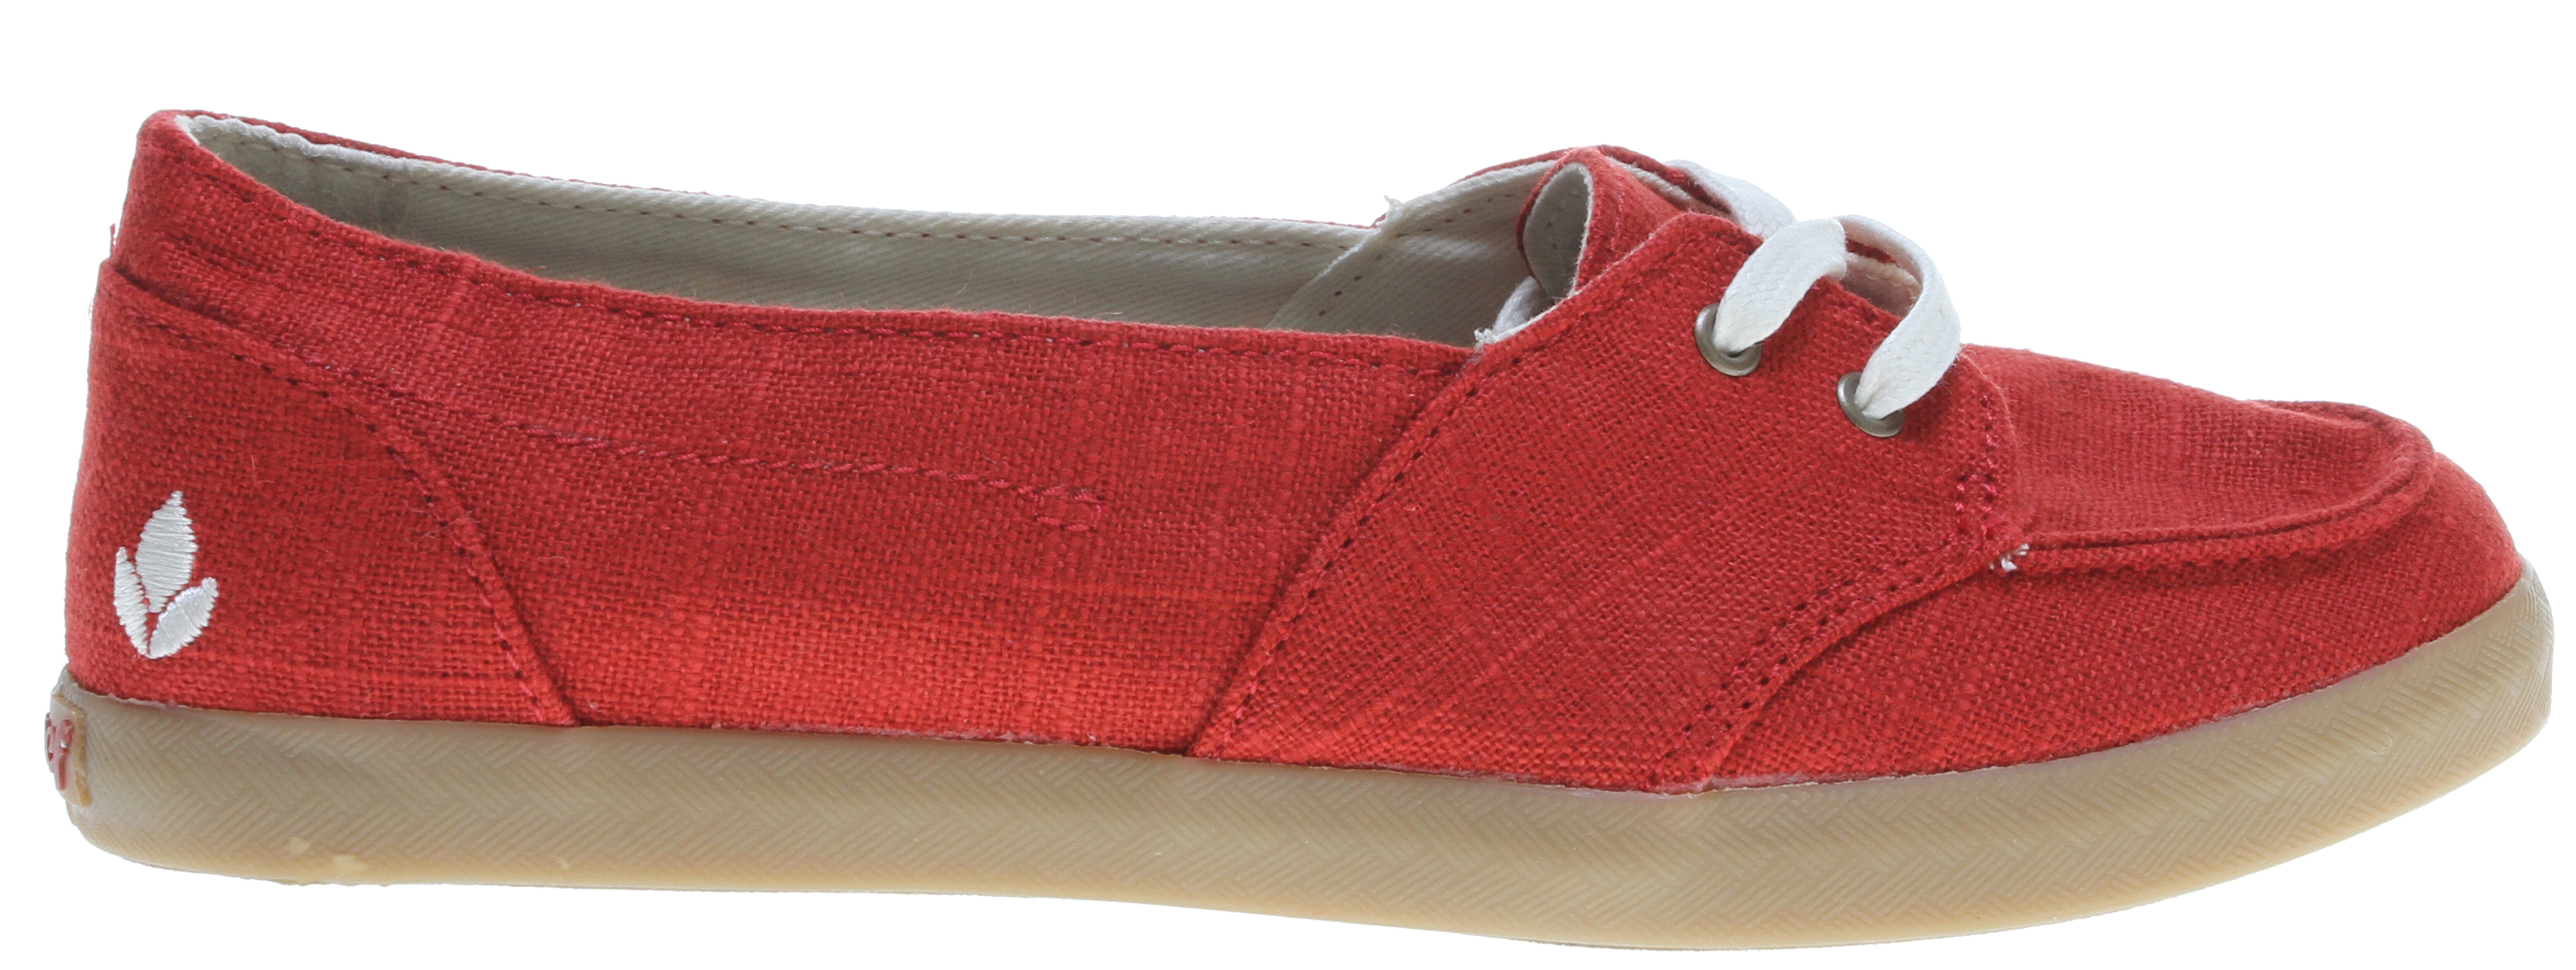 Surf Reef Deckhand Shoes - $34.95